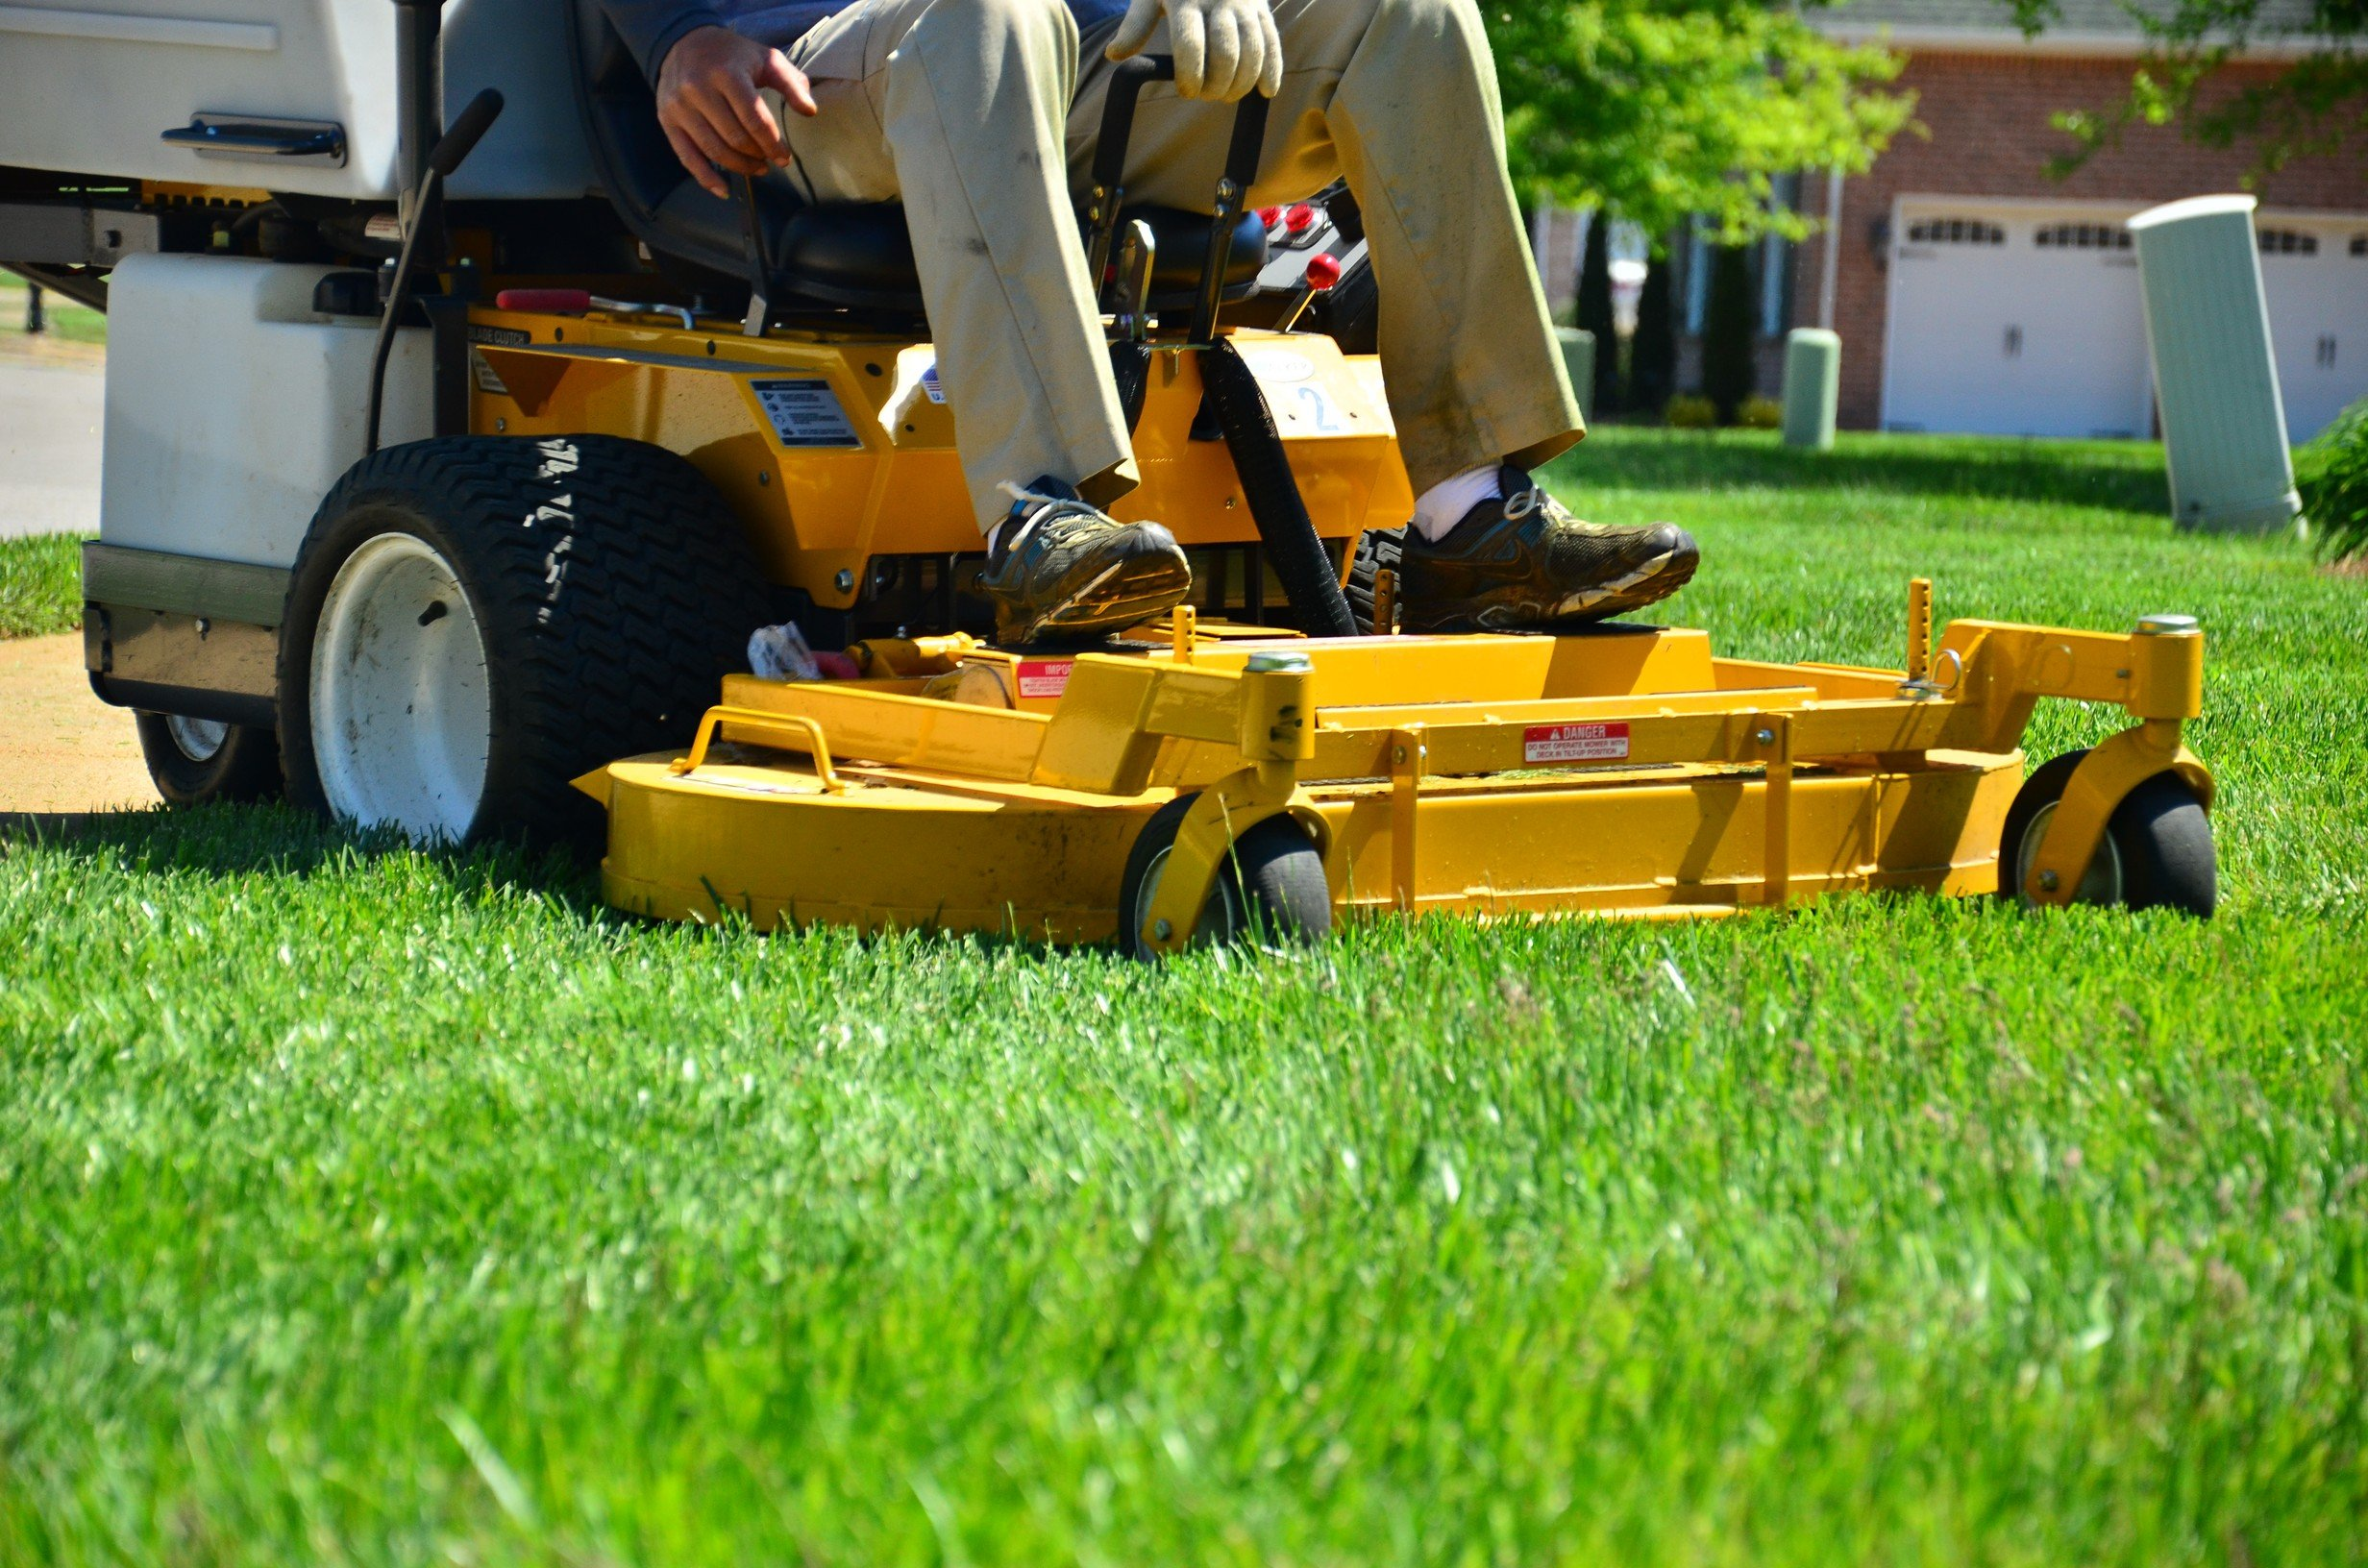 professional lawn care mower, riding a commercial mower